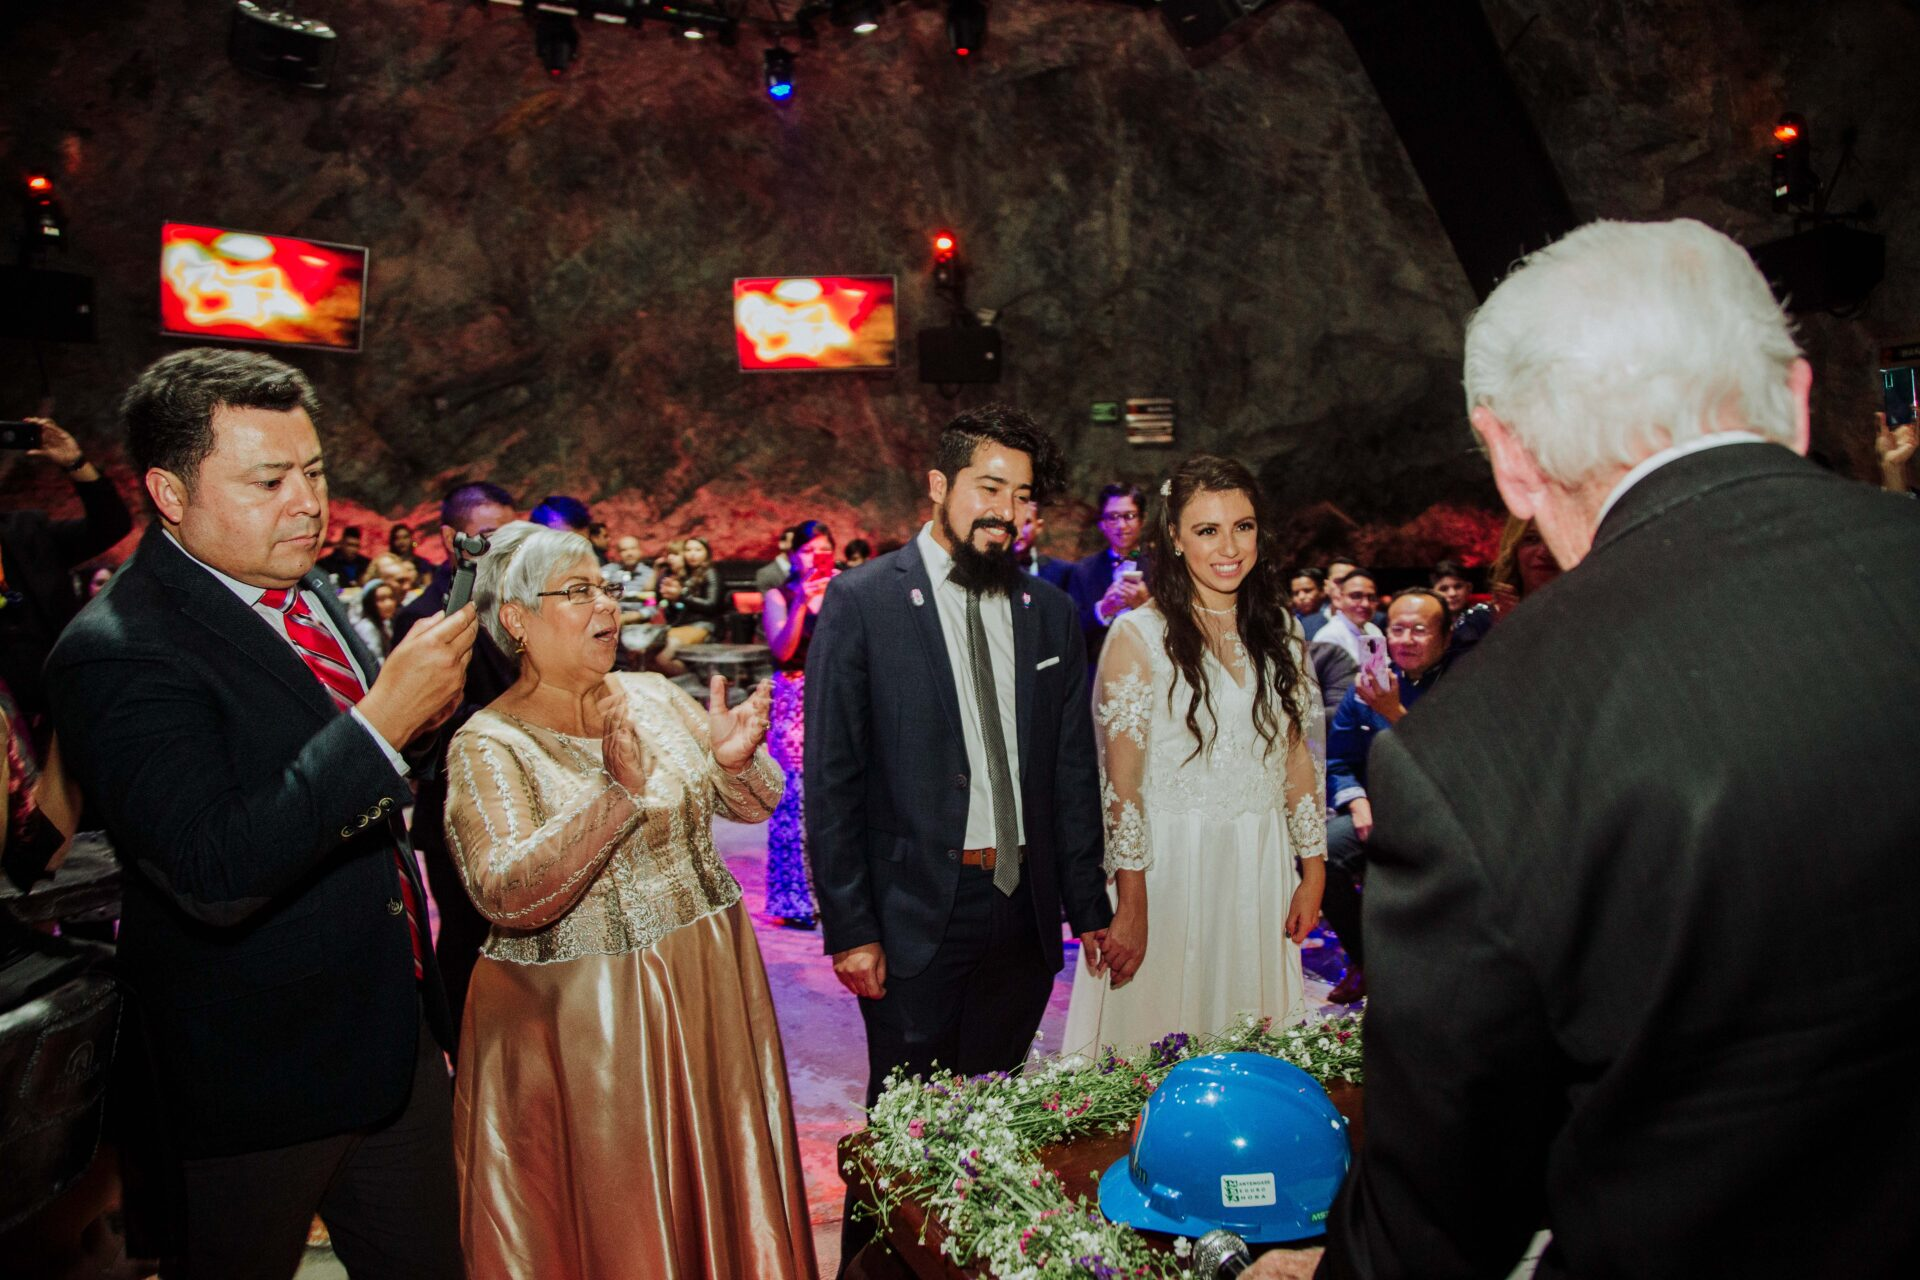 javier_noriega_fotografo_bodas_la_mina_club_zacatecas_wedding_photographer12